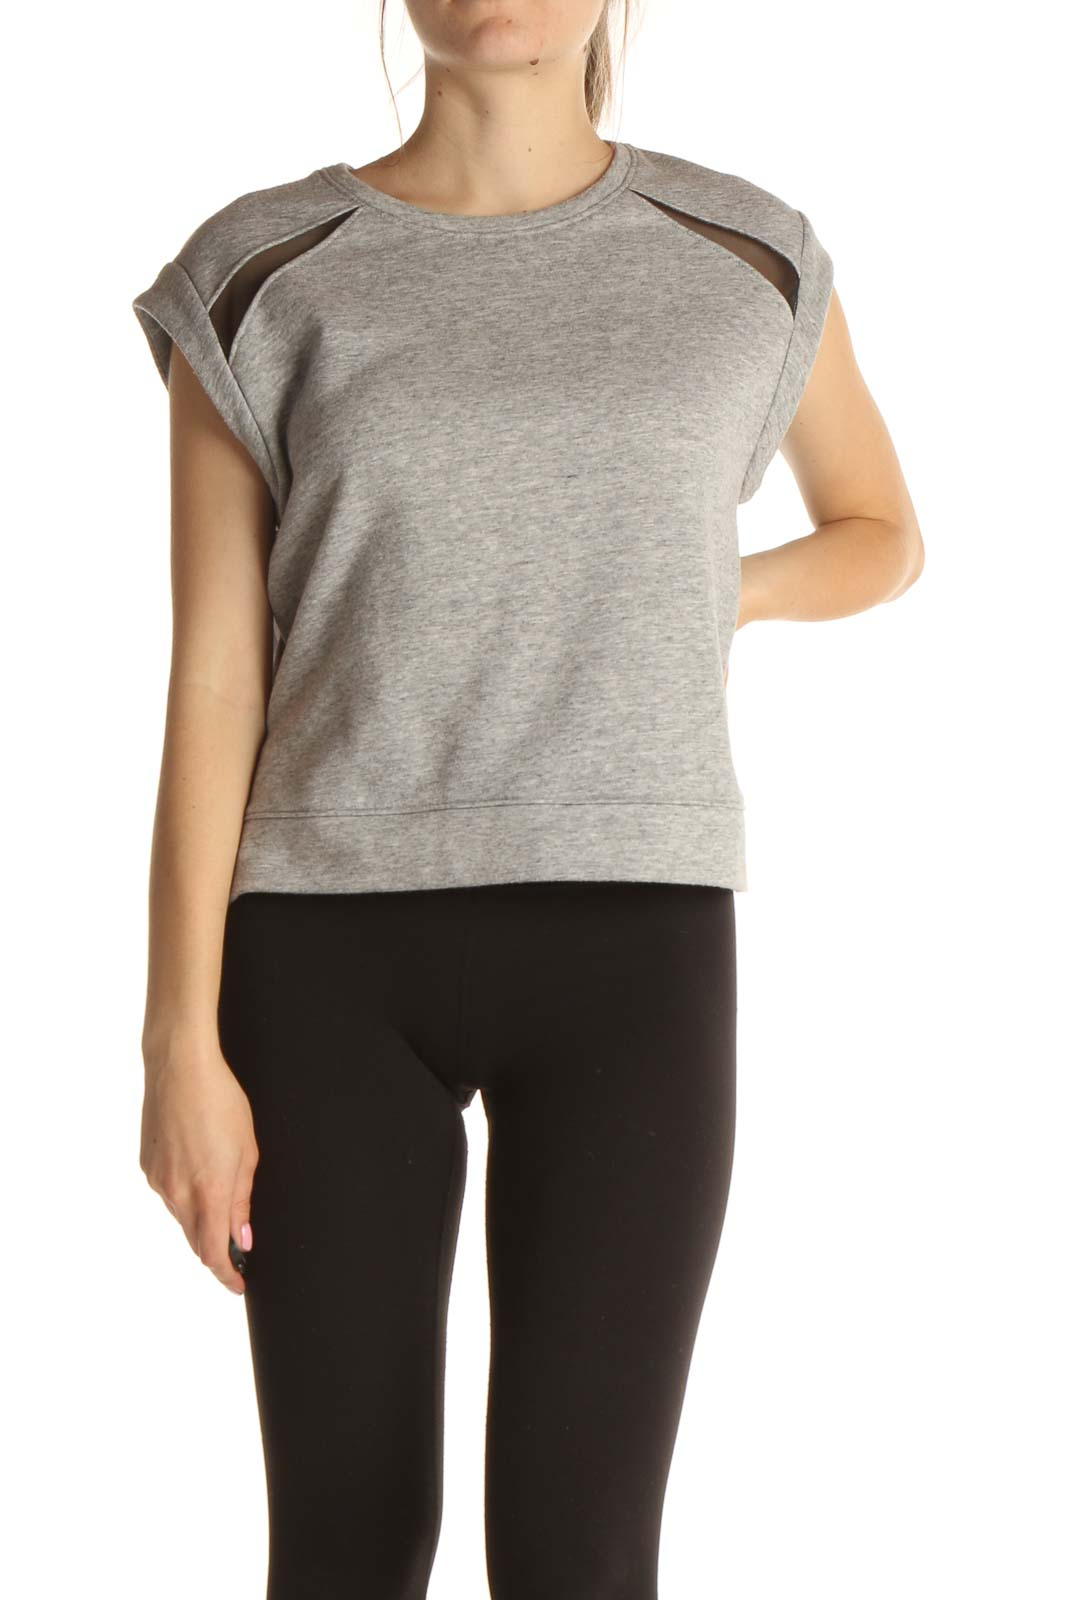 Gray Textured All Day Wear Shirt Front